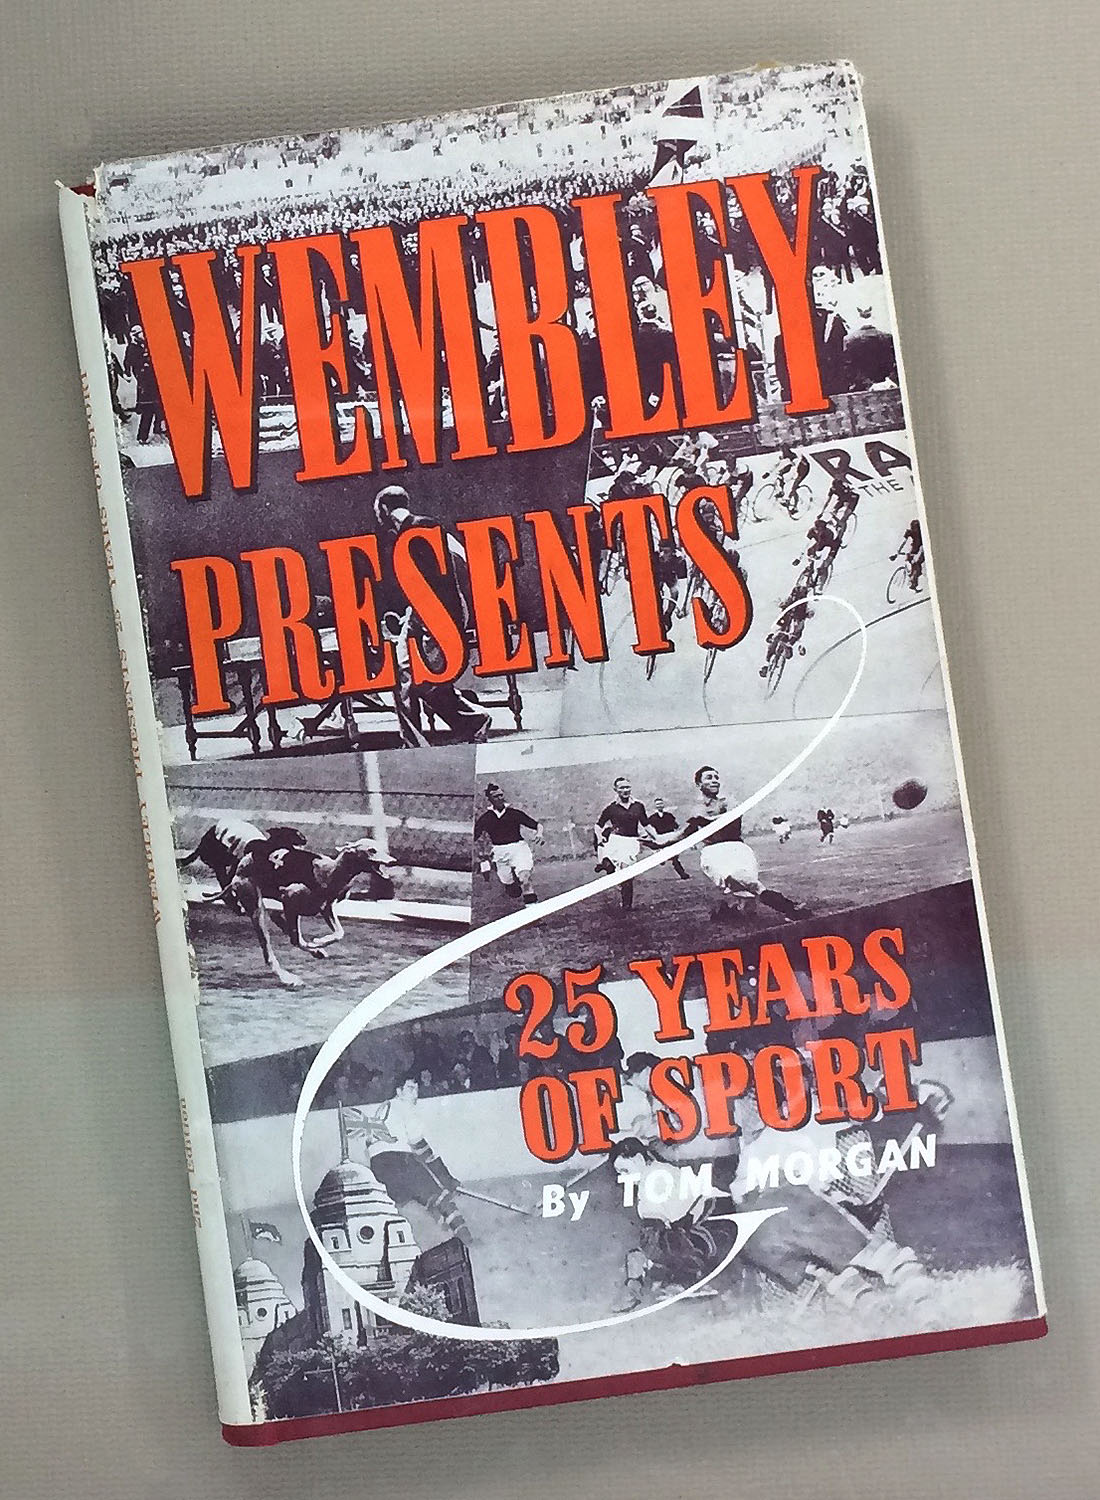 Wembley Presents 25 Years of Sport by Tom Morgan 1948